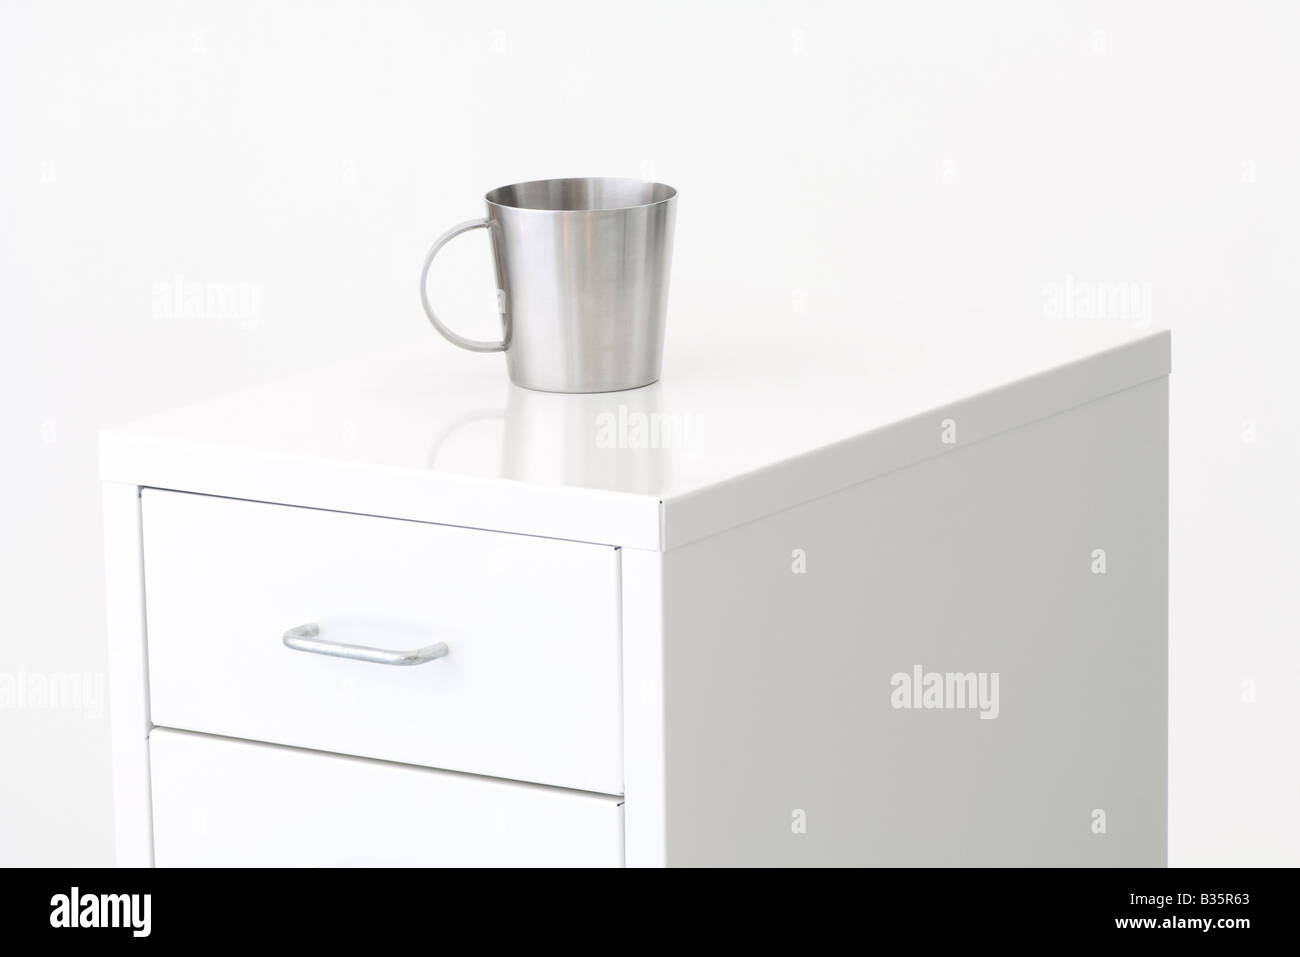 Metal cup on top of a filing cabinet - Stock Image